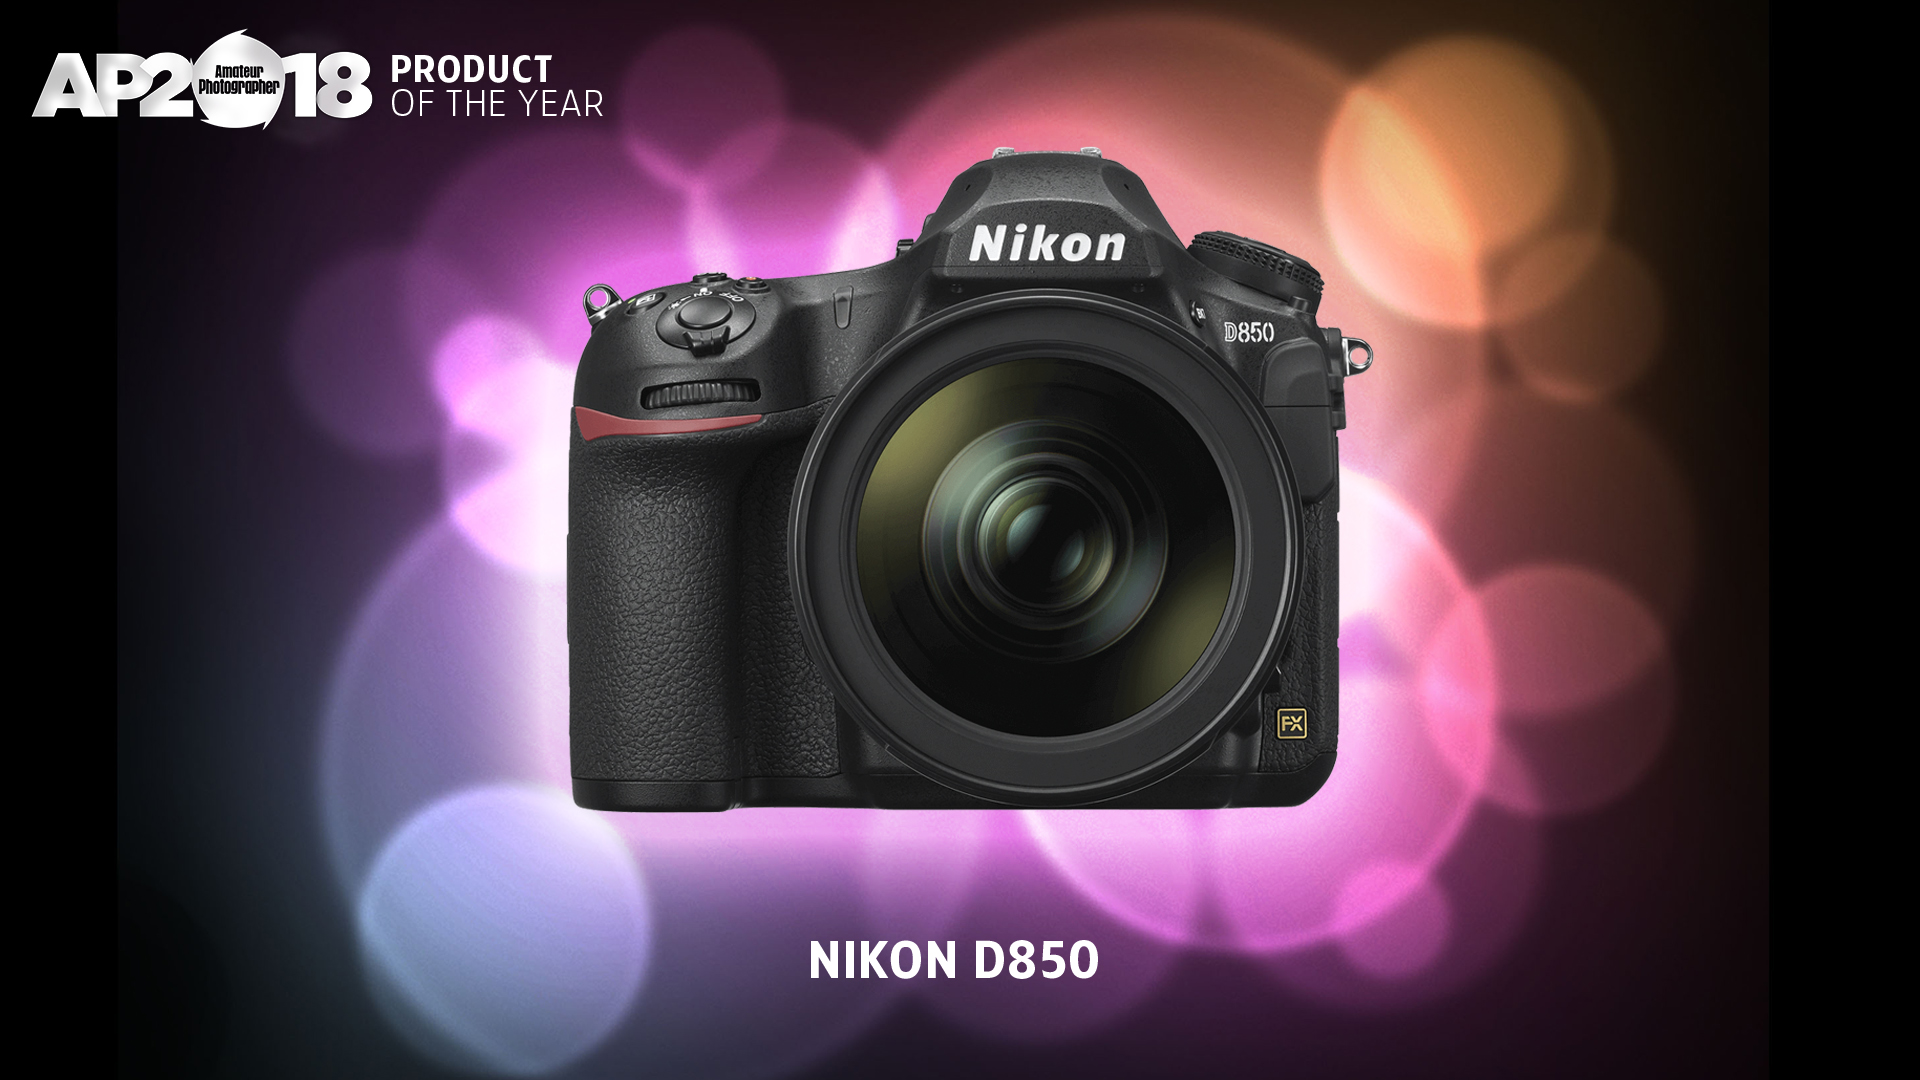 Nikon D850 scoops Product of the Year at the Amateur Photographer Awards 2018